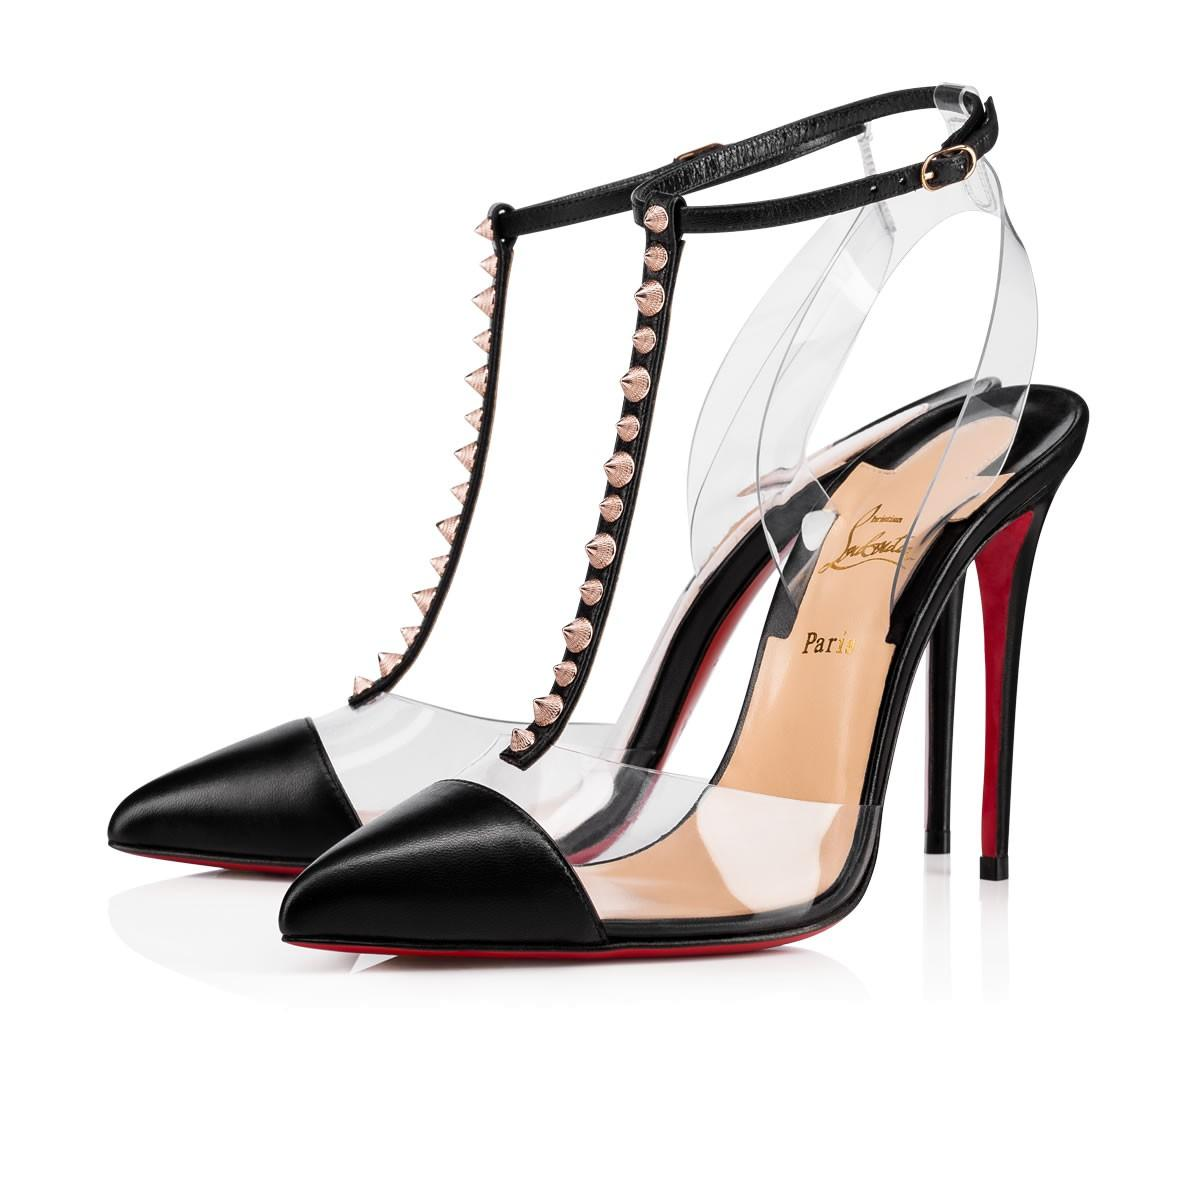 33dd16236ff5 Christian Louboutin Nosy Spikes Pvc   Leather Pumps - Vers Black ...